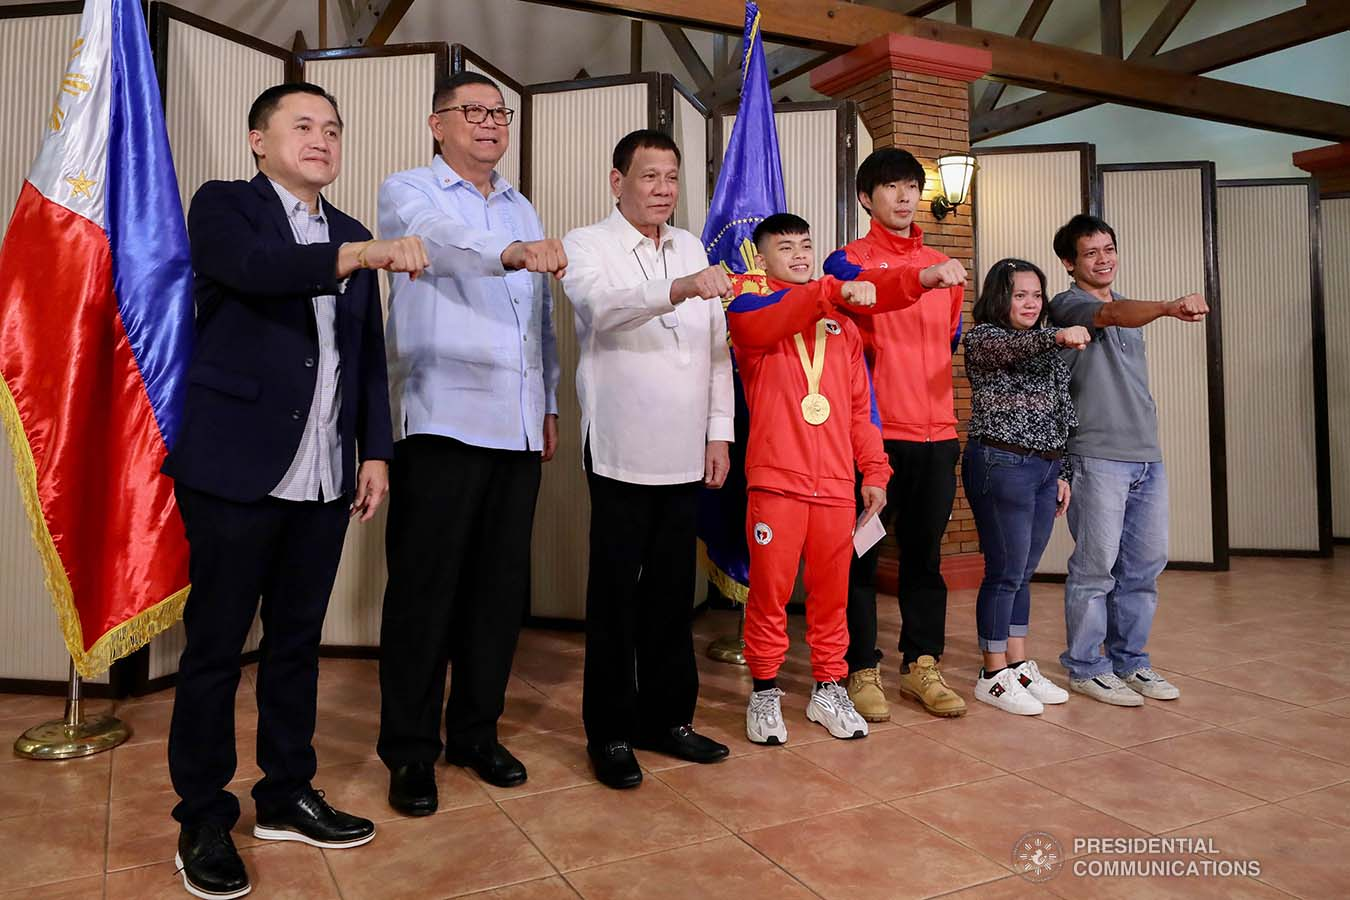 """President Rodrigo Roa Duterte strikes his signature pose with 49th FIG Artistic Gymnastics World Championships Gold Medalist Carlos Yulo during their meeting at the Malago Clubhouse in Malacañang on October 16, 2019. Also in the photo are Senate Committee on Sports Chair Senator Christopher """"Bong"""" Go and Philippine Sports Commission Chairman William Ramirez. RICHARD MADELO/PRESIDENTIAL PHOTO"""